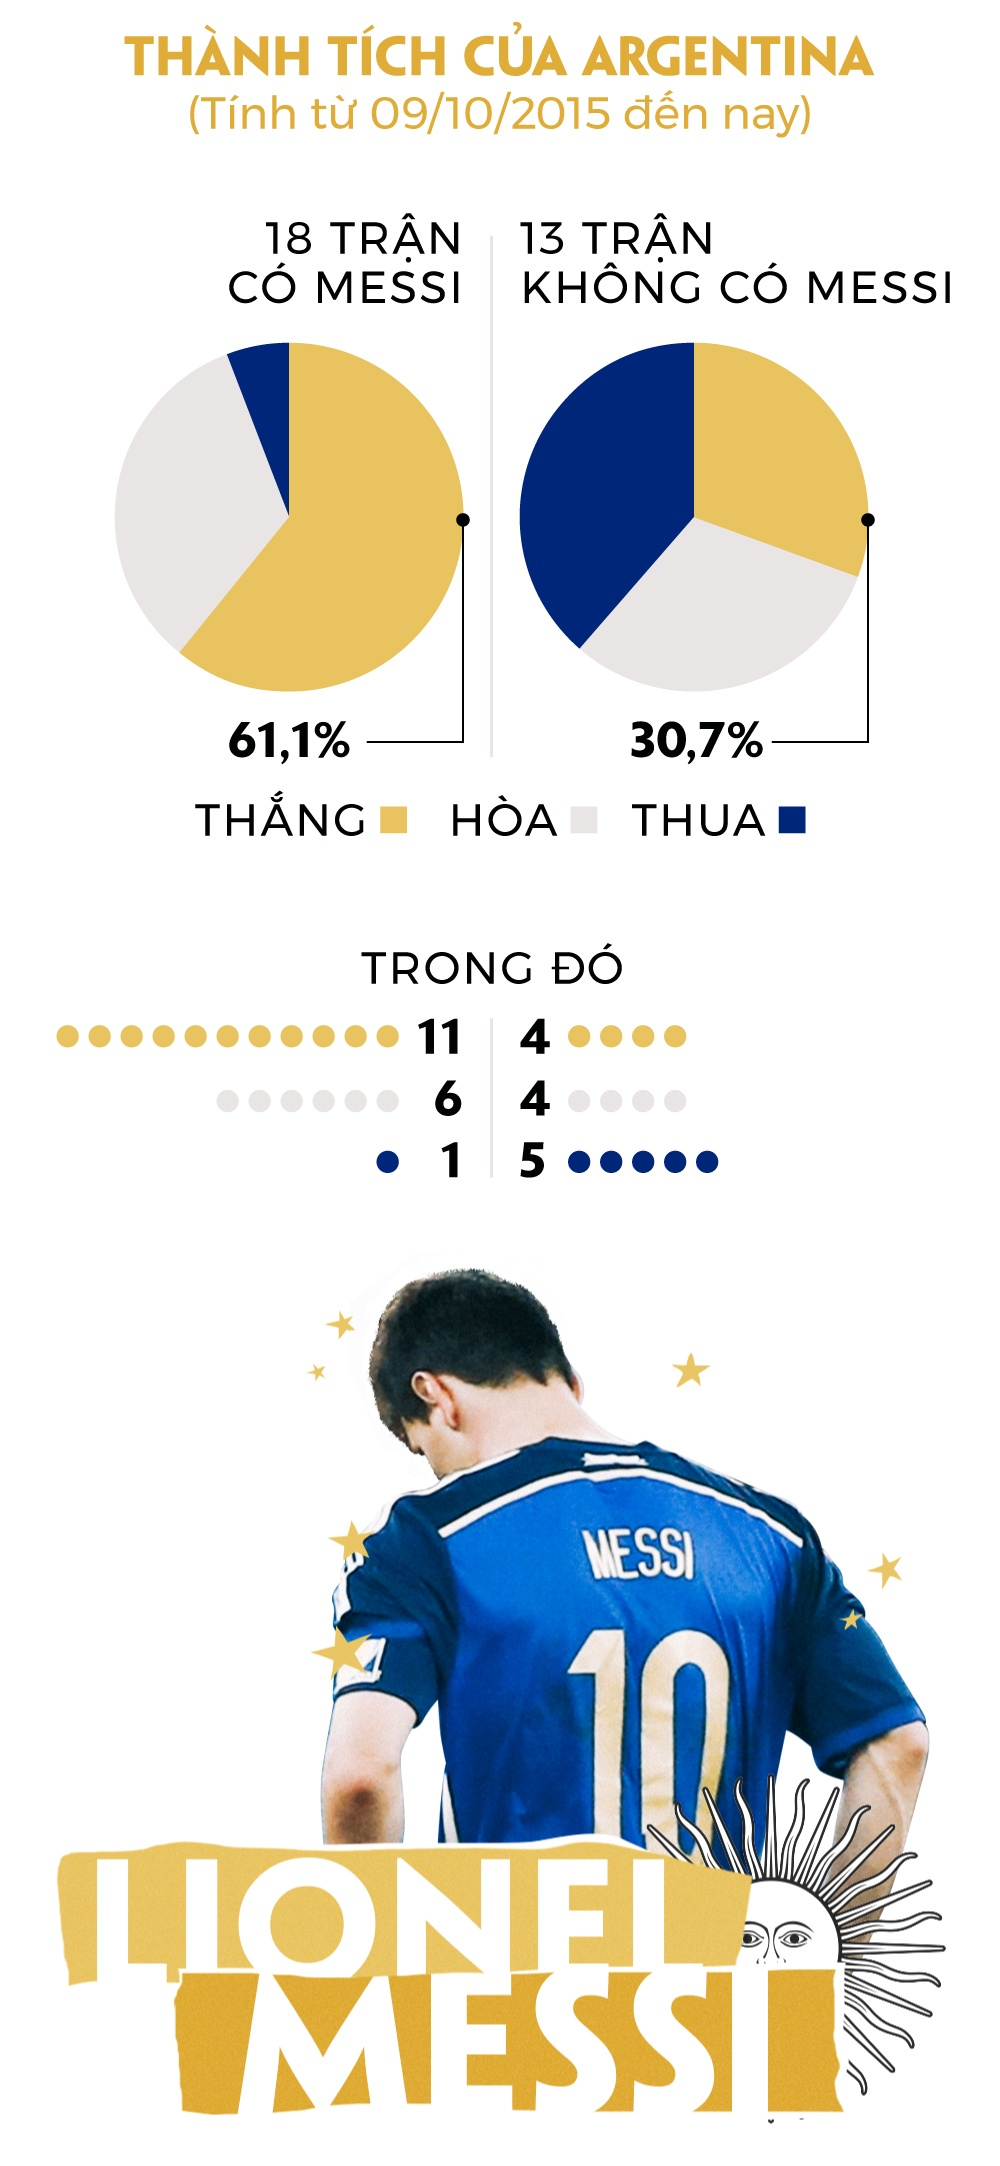 Lionel Messi truoc ngay phan quyet anh 13